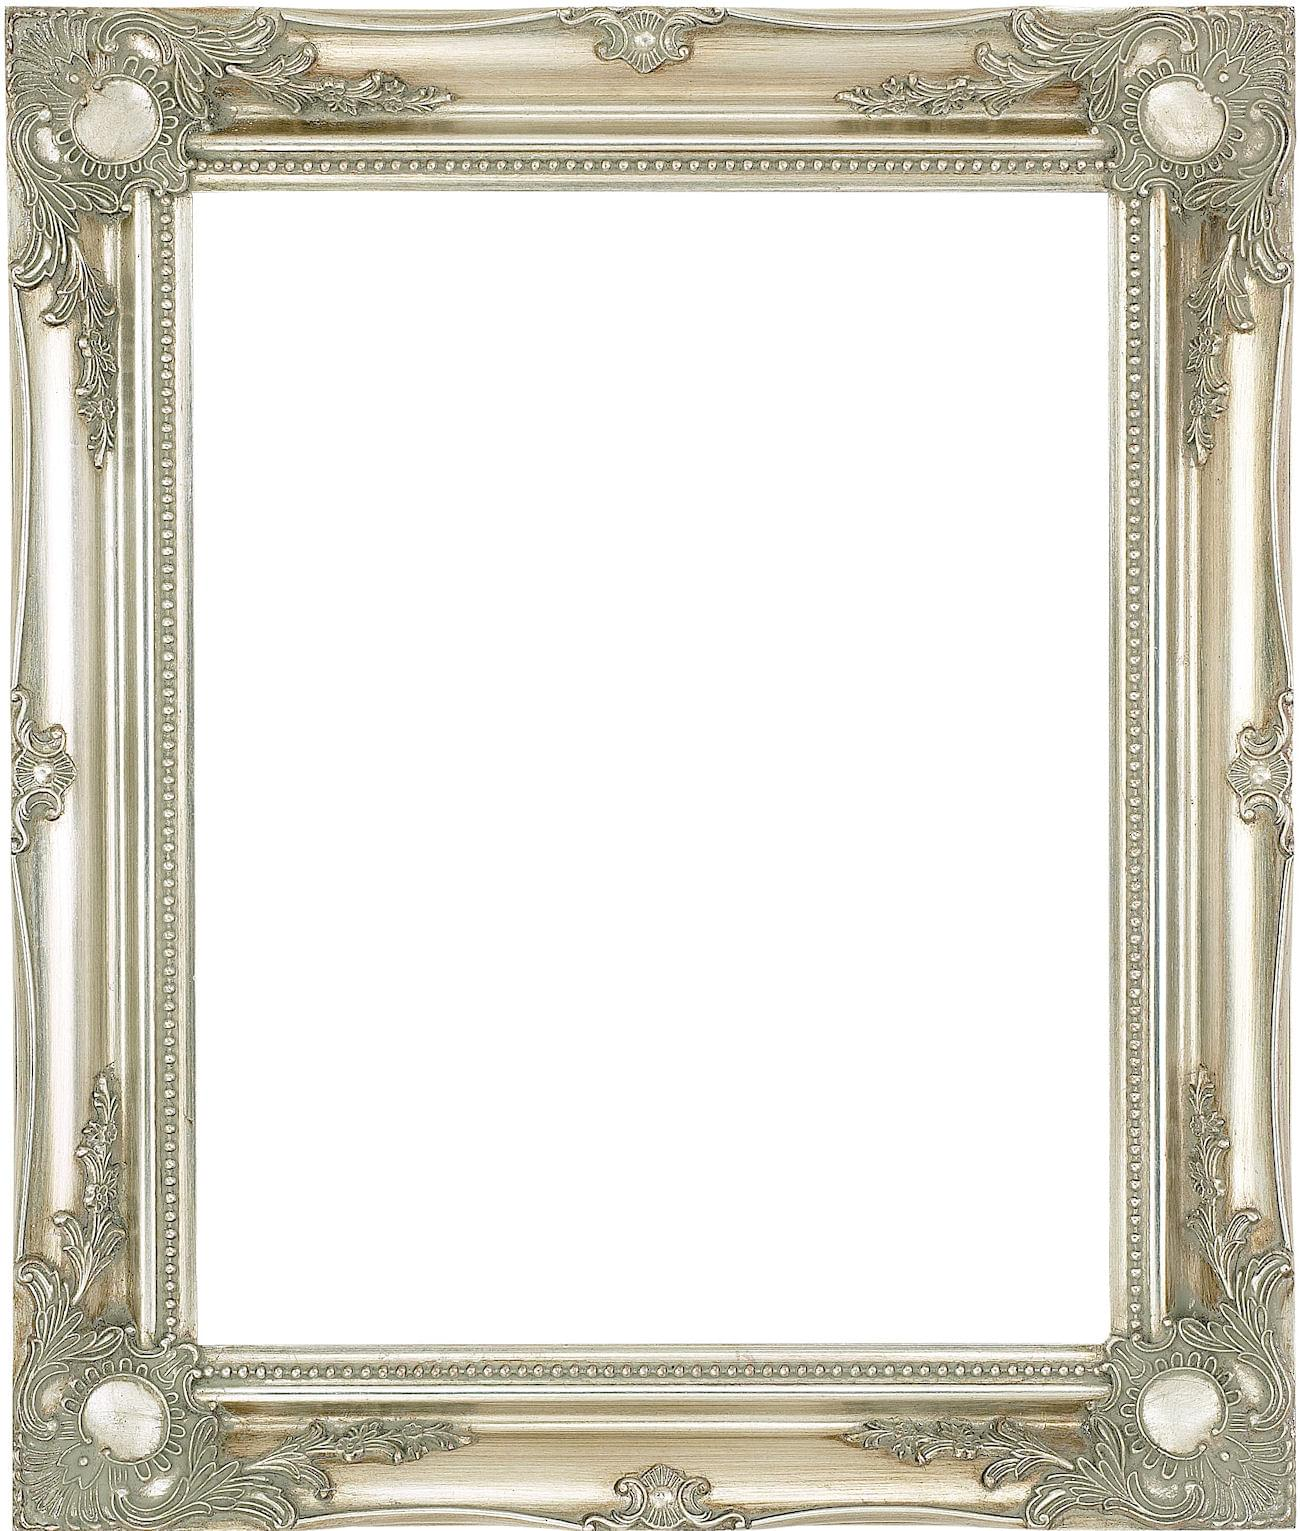 Buy Picture Frames Custom Photo Painting And Picture Frames Online Frames